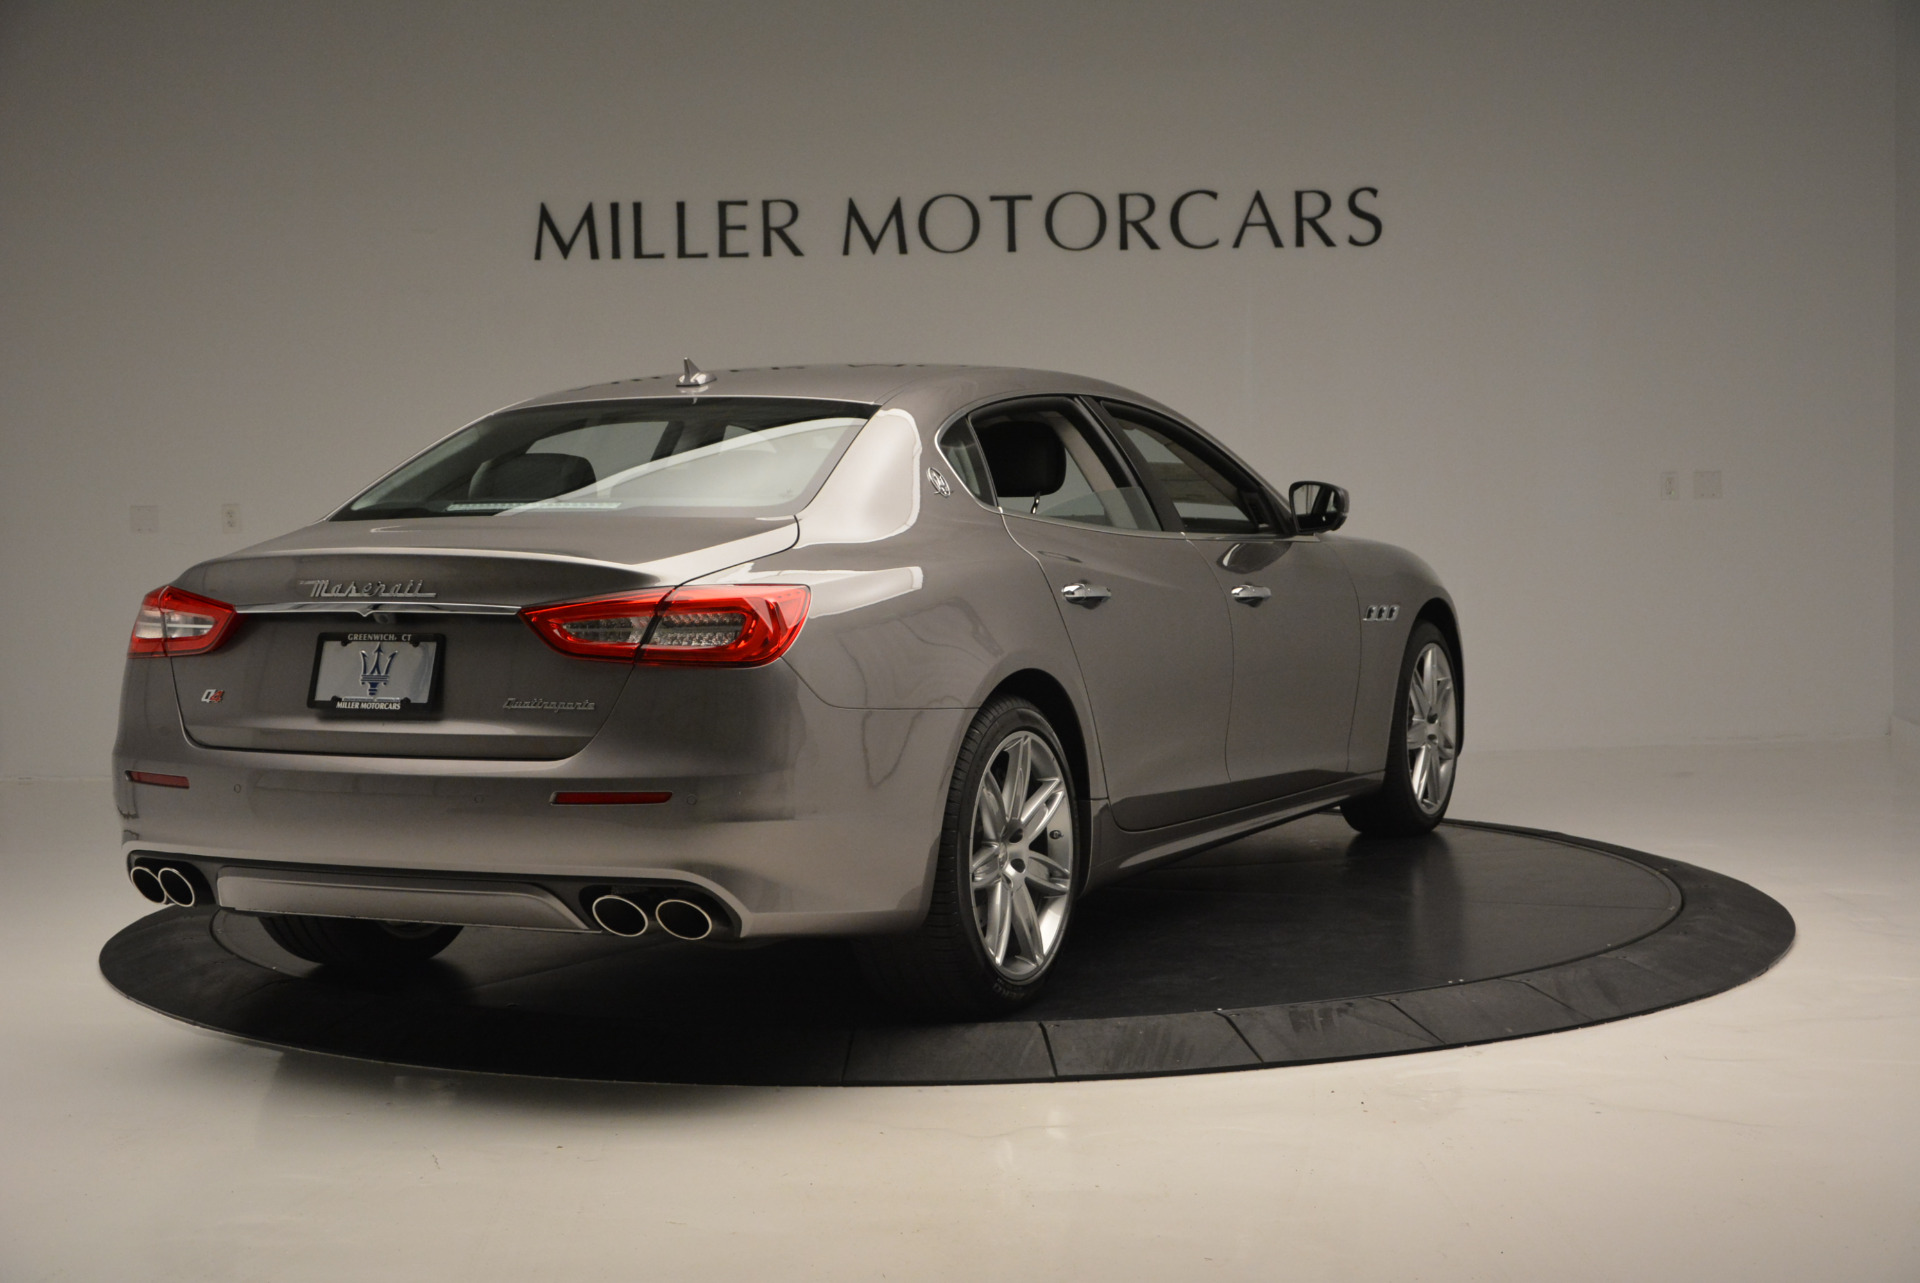 New 2017 Maserati Quattroporte S Q4 GranLusso For Sale In Westport, CT 611_p7